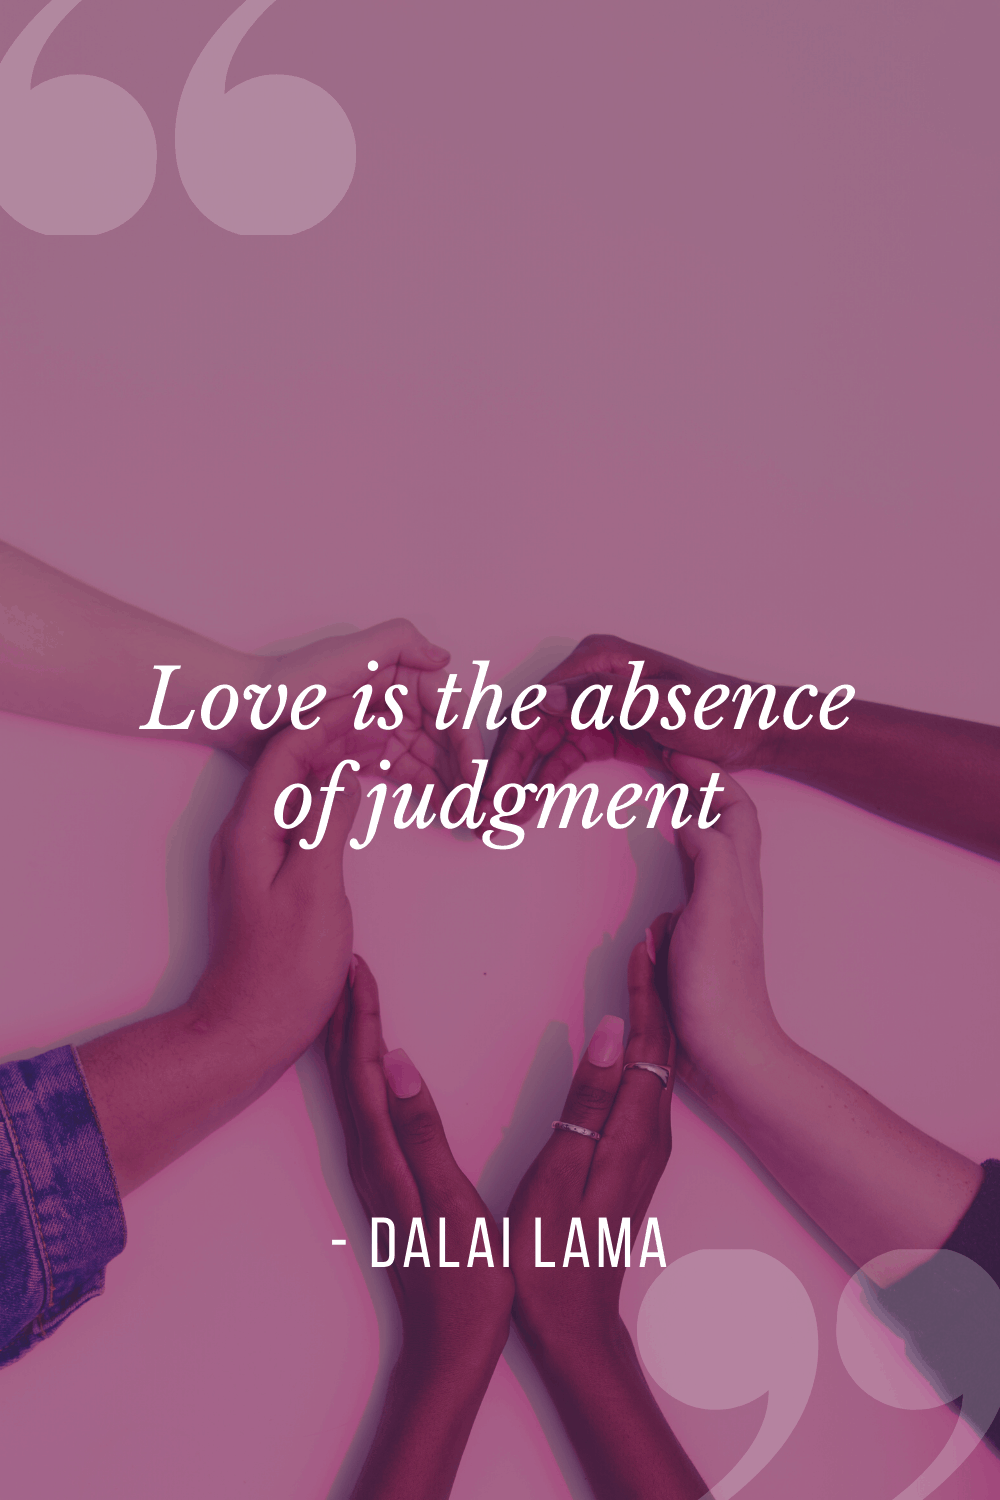 Love is the absence of judgment, Dalai Lama